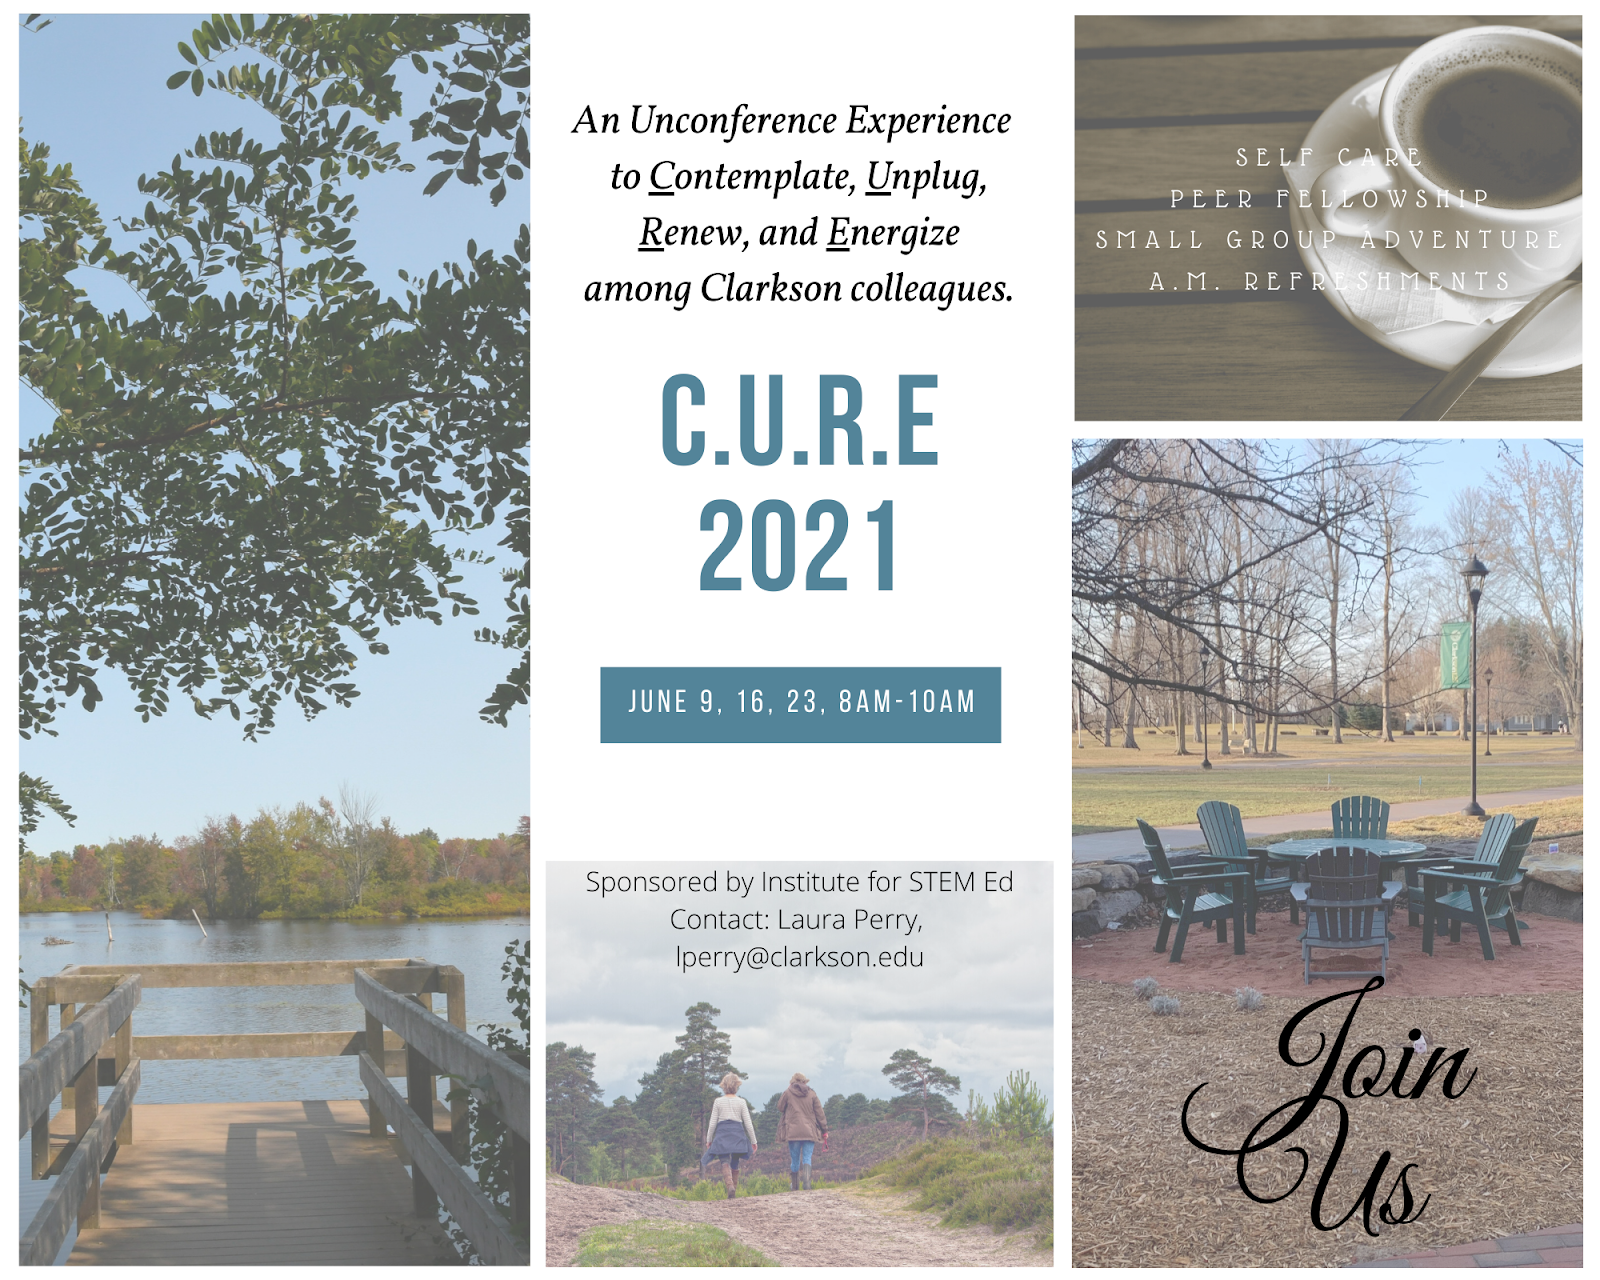 CURE event poster with collagues of images, river, coffee cub, two women walking